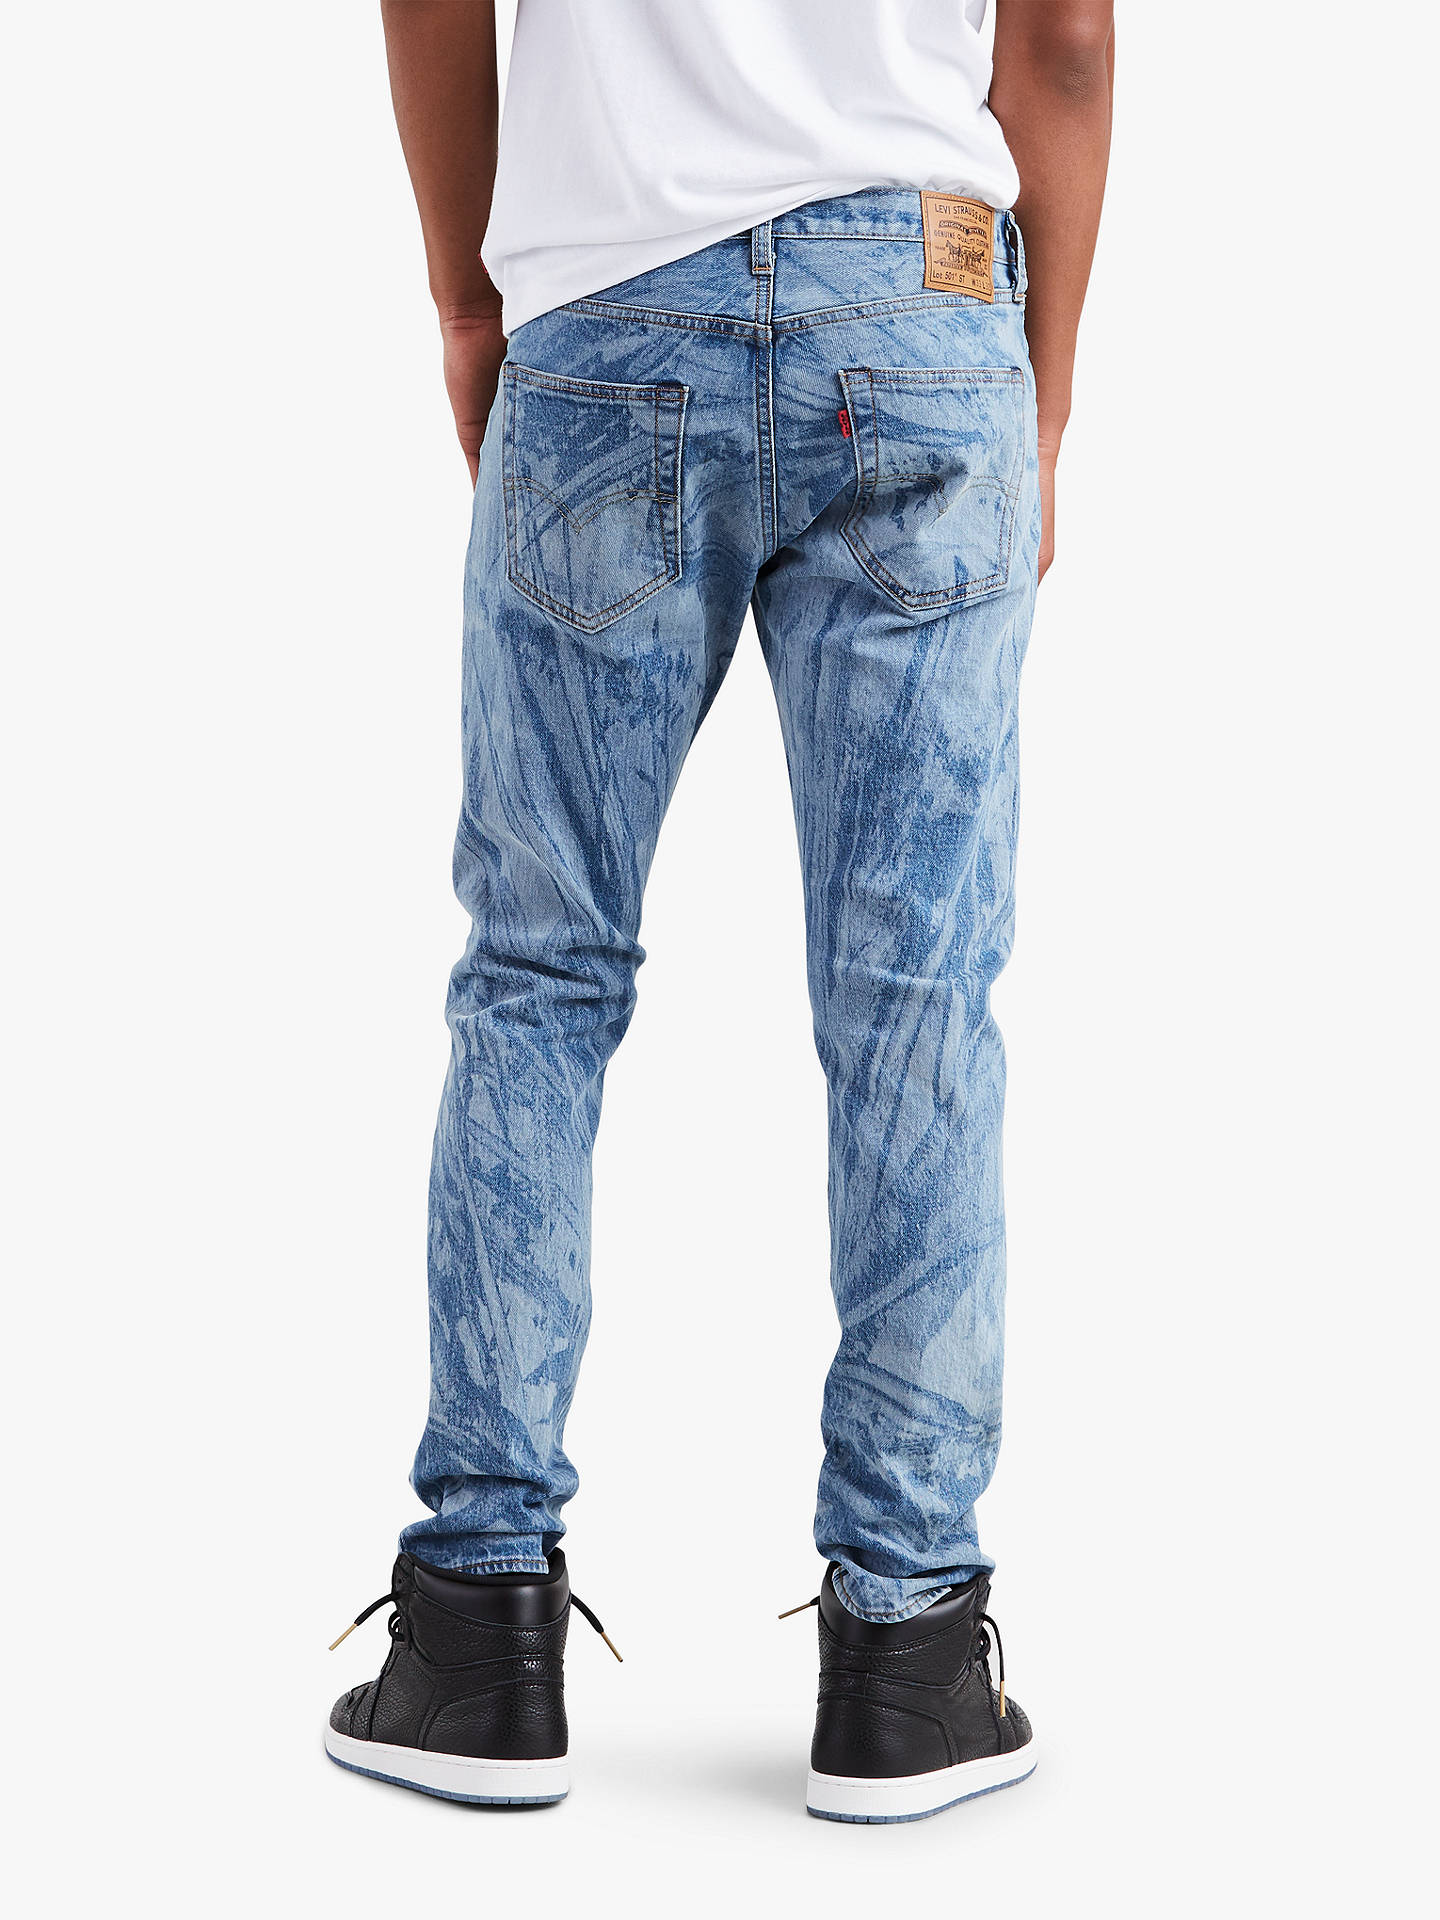 e428234b0917 ... Buy Levi s x Justin Timberlake 501 Slim Tapered Fit Ripped Jeans